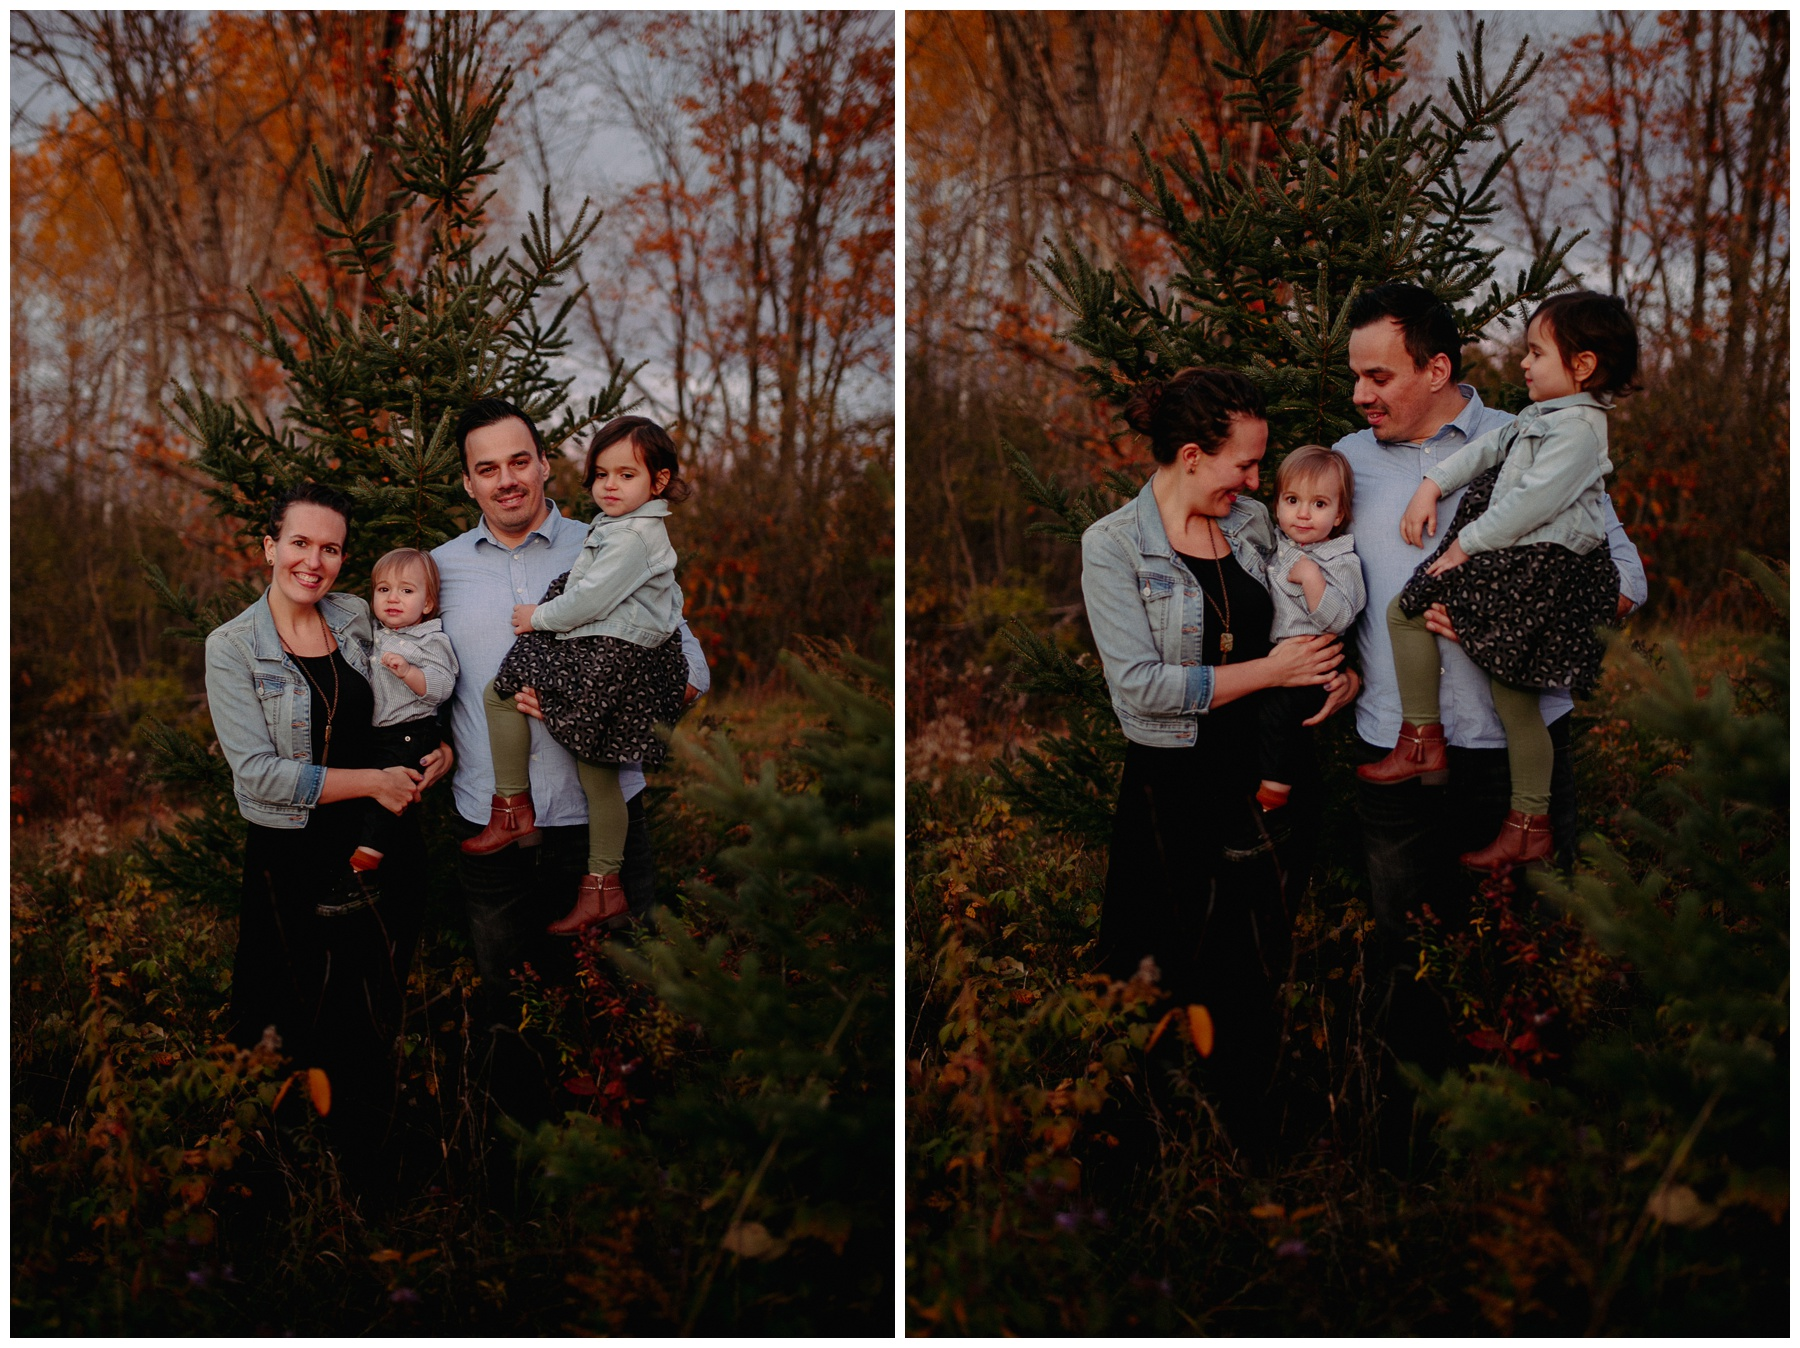 kerry ford photography - fall autumn family session perth051.jpg